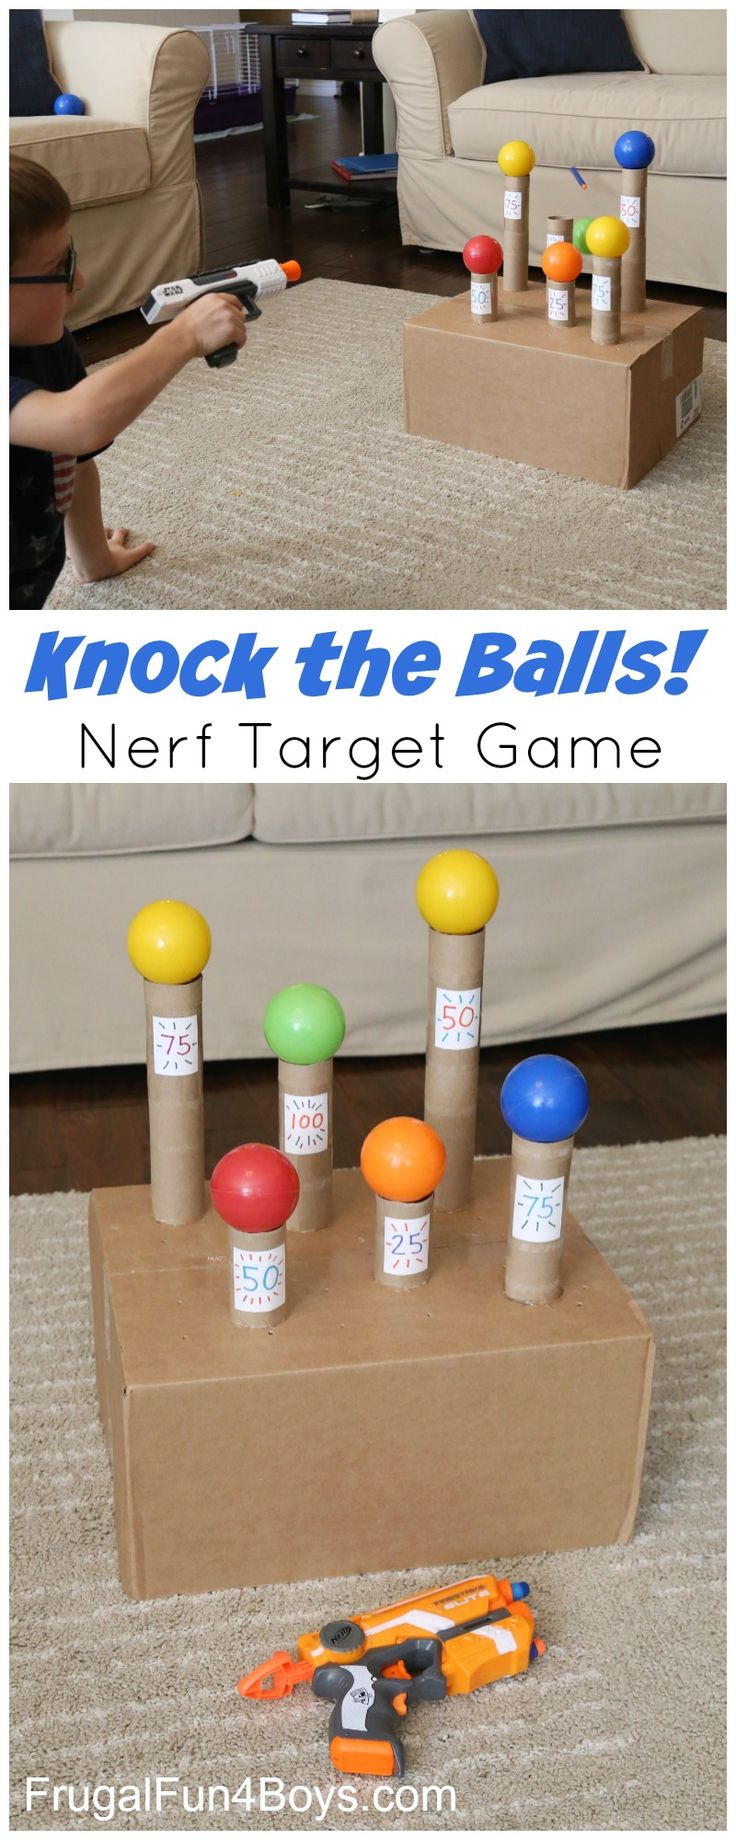 Knock the Balls Down Nerf Target Game - Super boredom buster, and a fun party idea too. . . . . . der Blog für den Gentleman - www.thegentlemanclub.de/blog